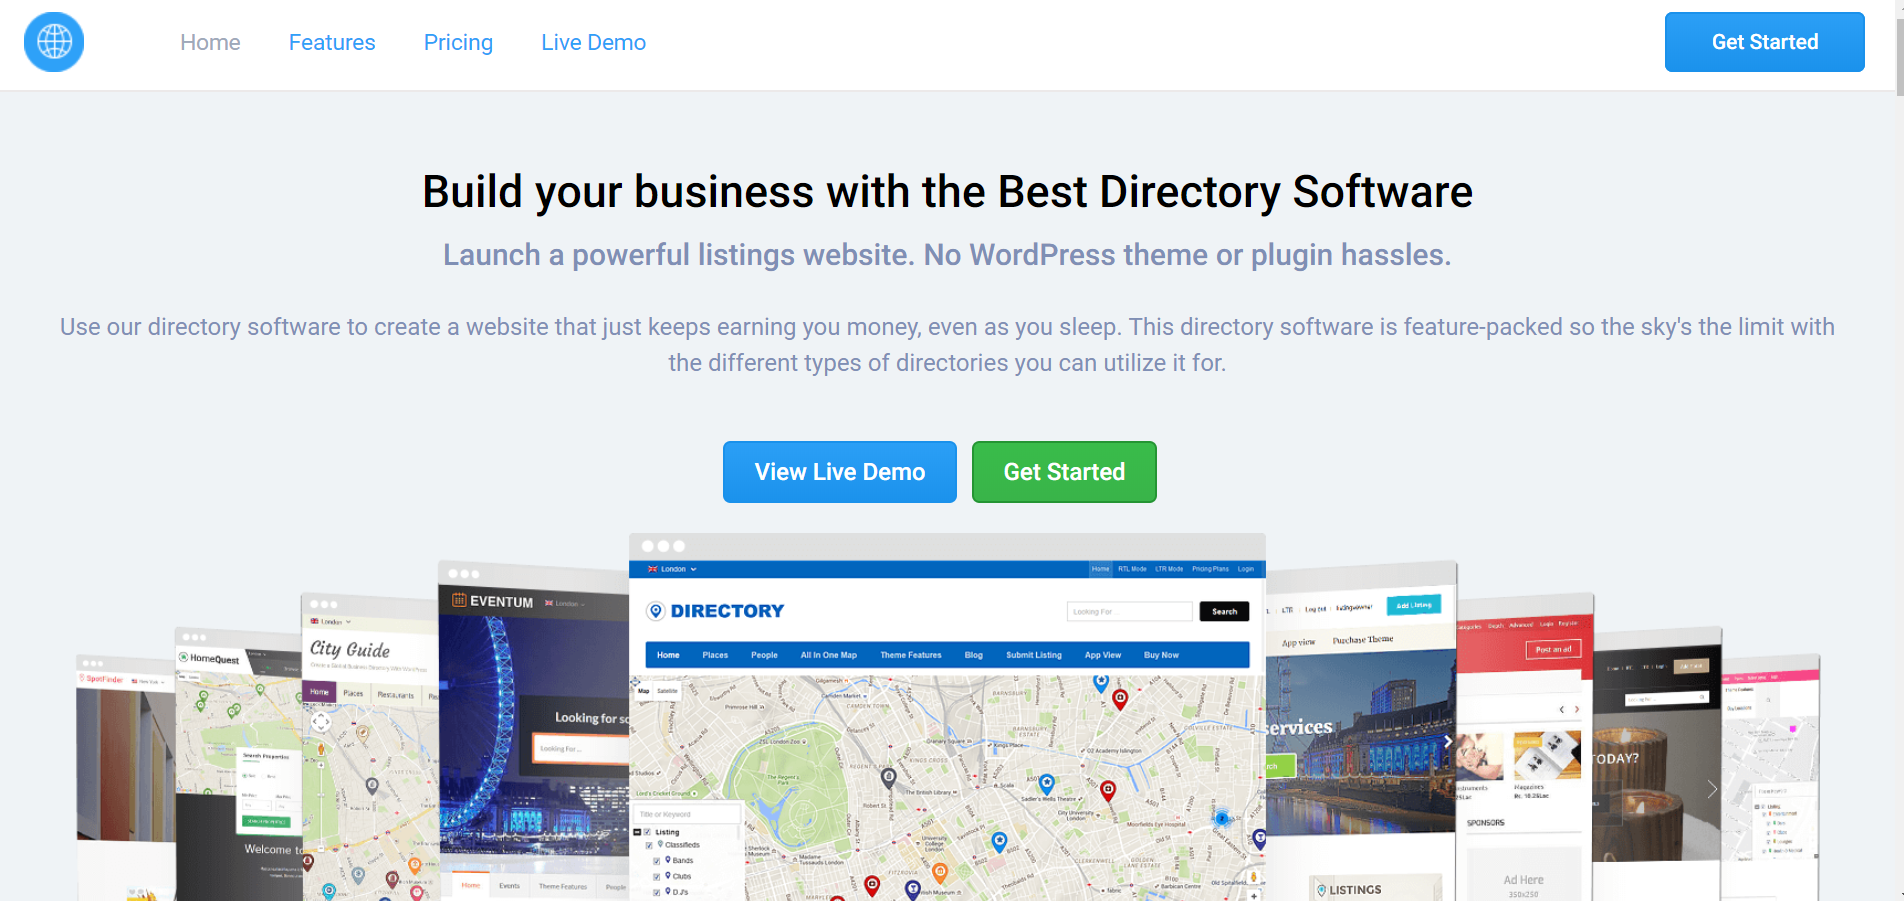 Templatic's Directory Software